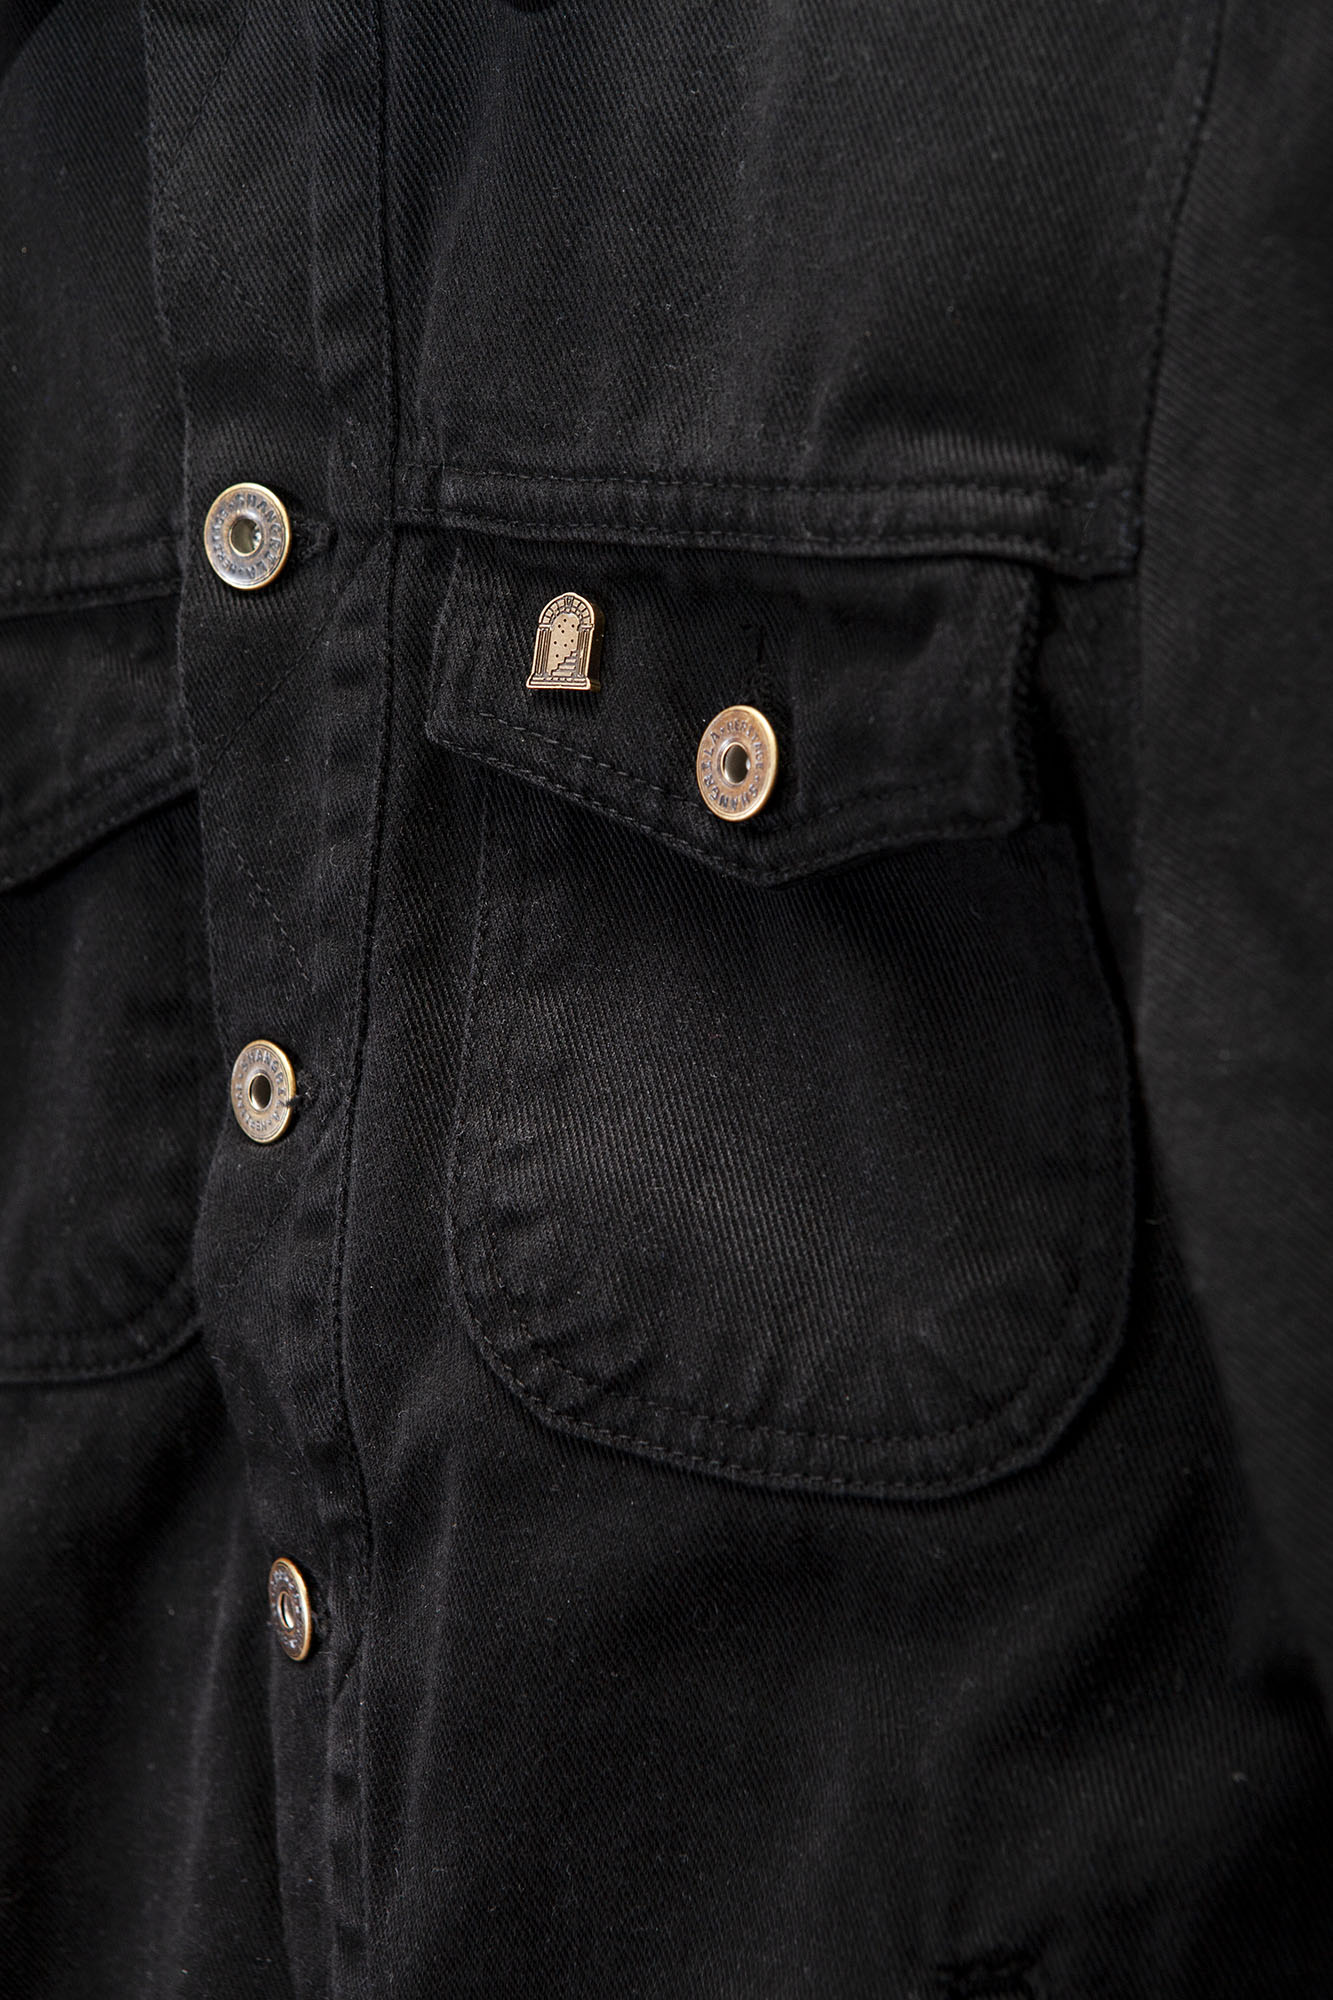 shangri-la-heritage-single-rider-black-canvas-jacket-still-life-detail